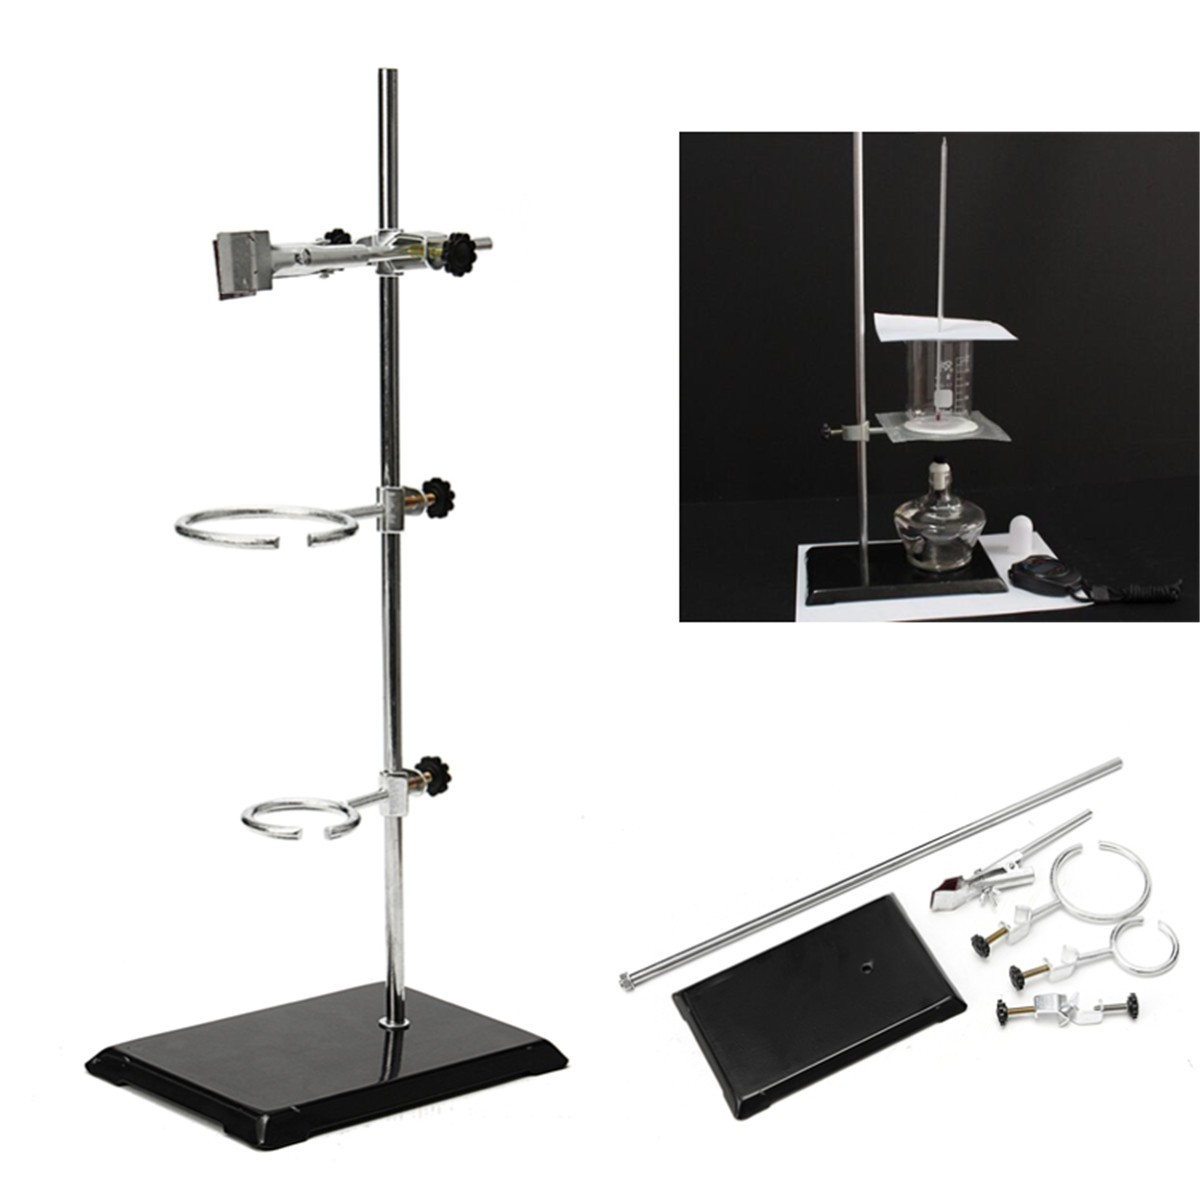 52CM Lab Laboratory Retort Stands Support Clamp Flask Platform Set High Height For Test Tube Flask School Laboratory Supply three prong extension lab flask clamp beaker clamp multifunction laboratory clamp chemistry lab stand for cylindrical glass tube